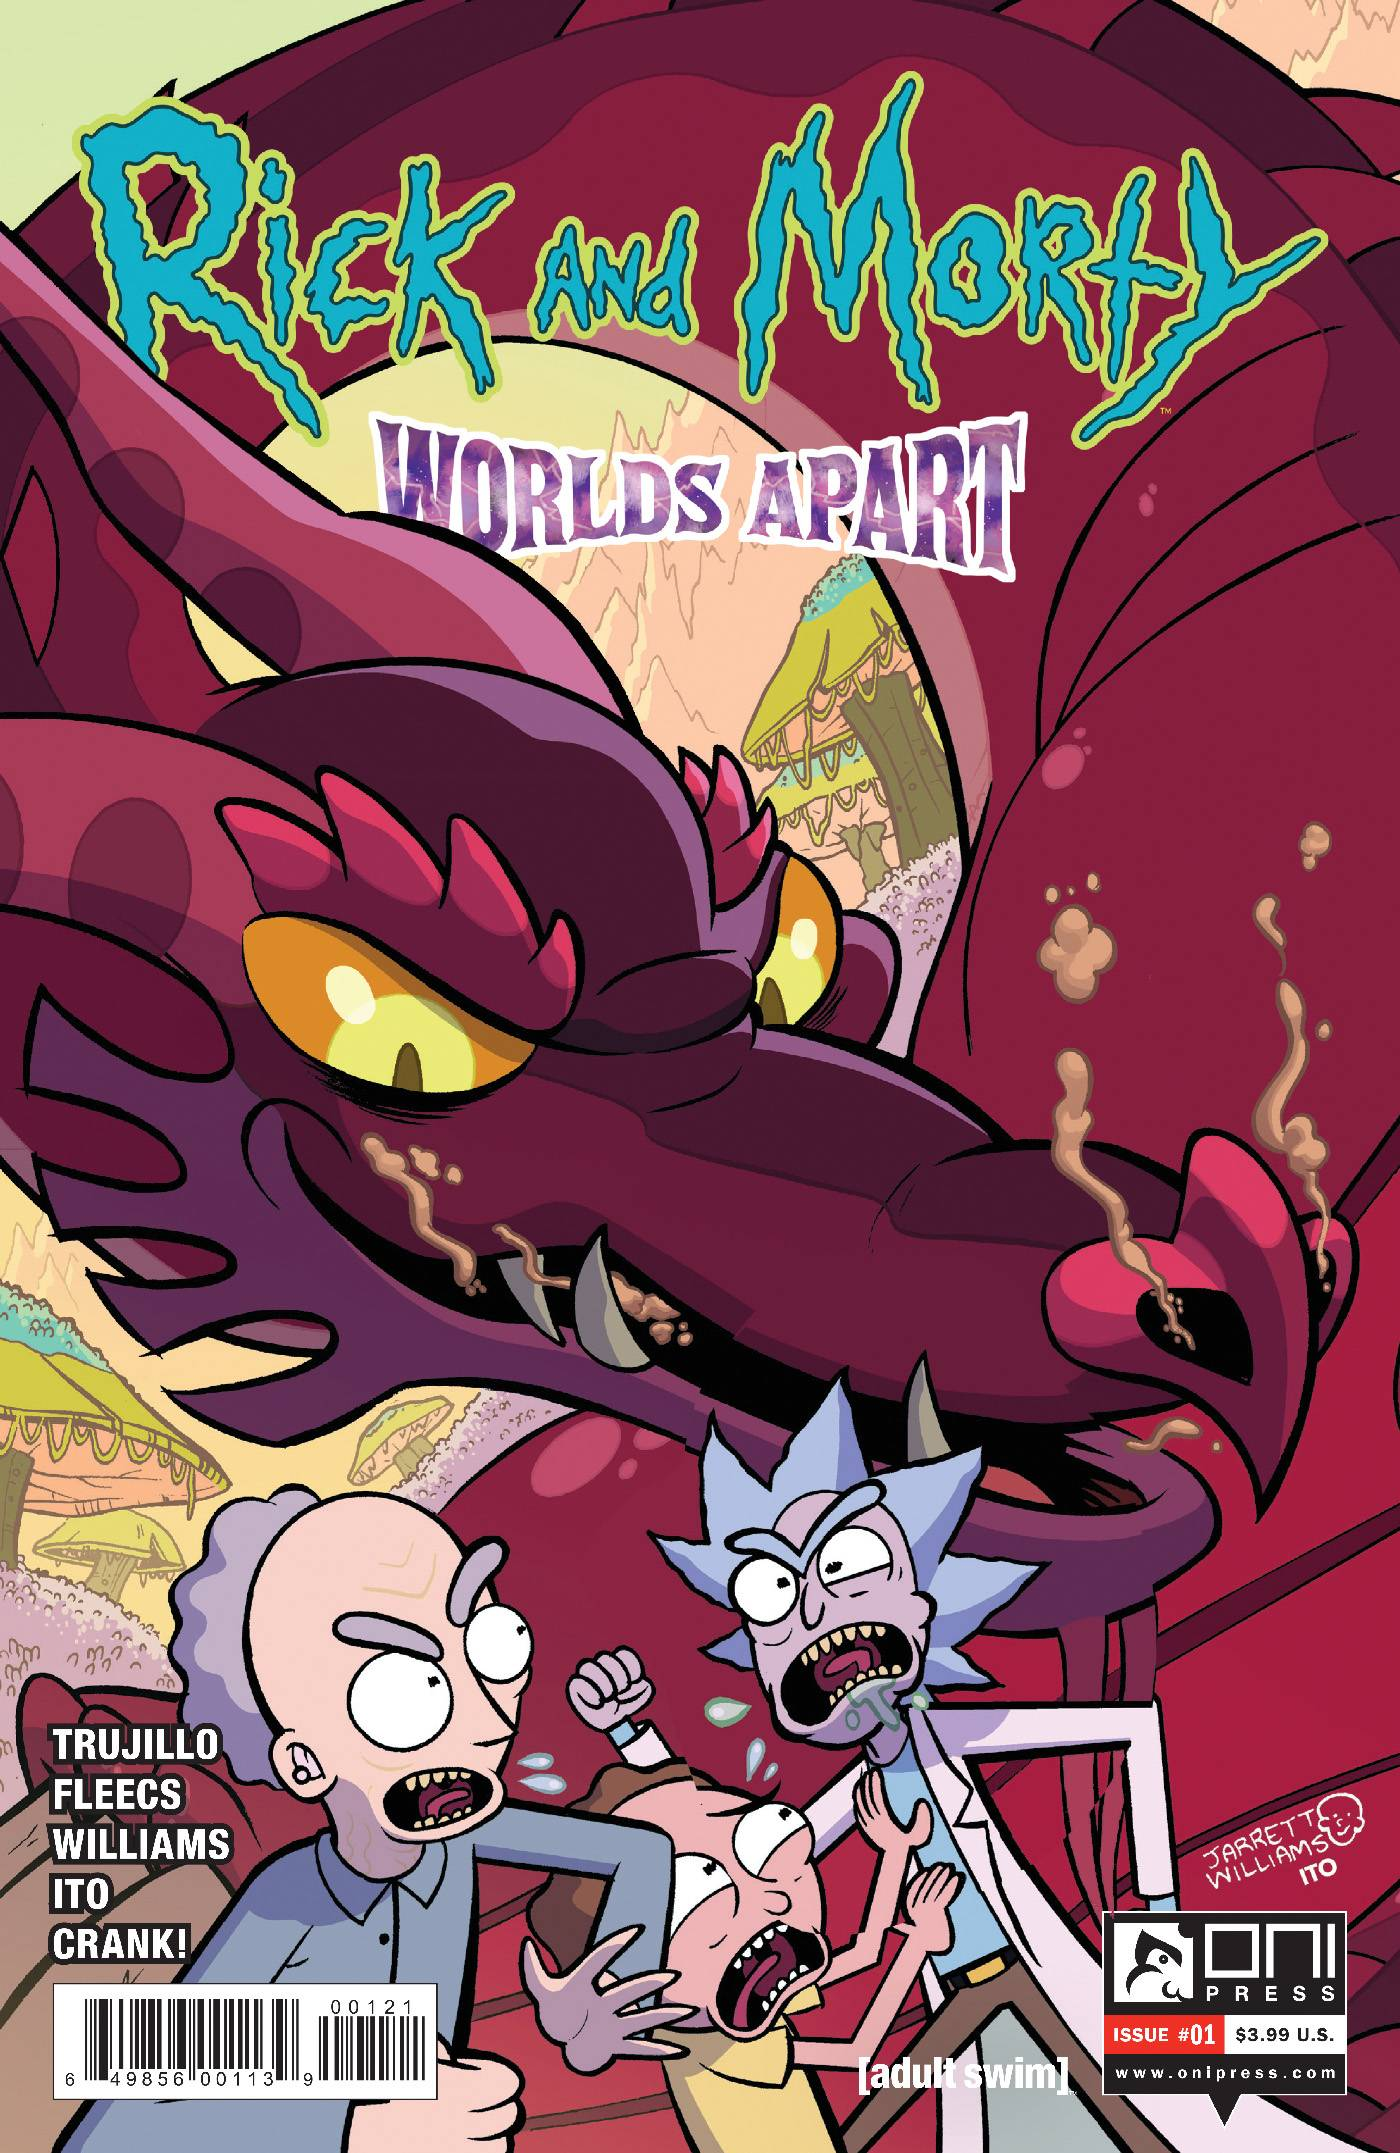 ^RICK AND MORTY WORLDS APART #1 CVR B WILLIAMS